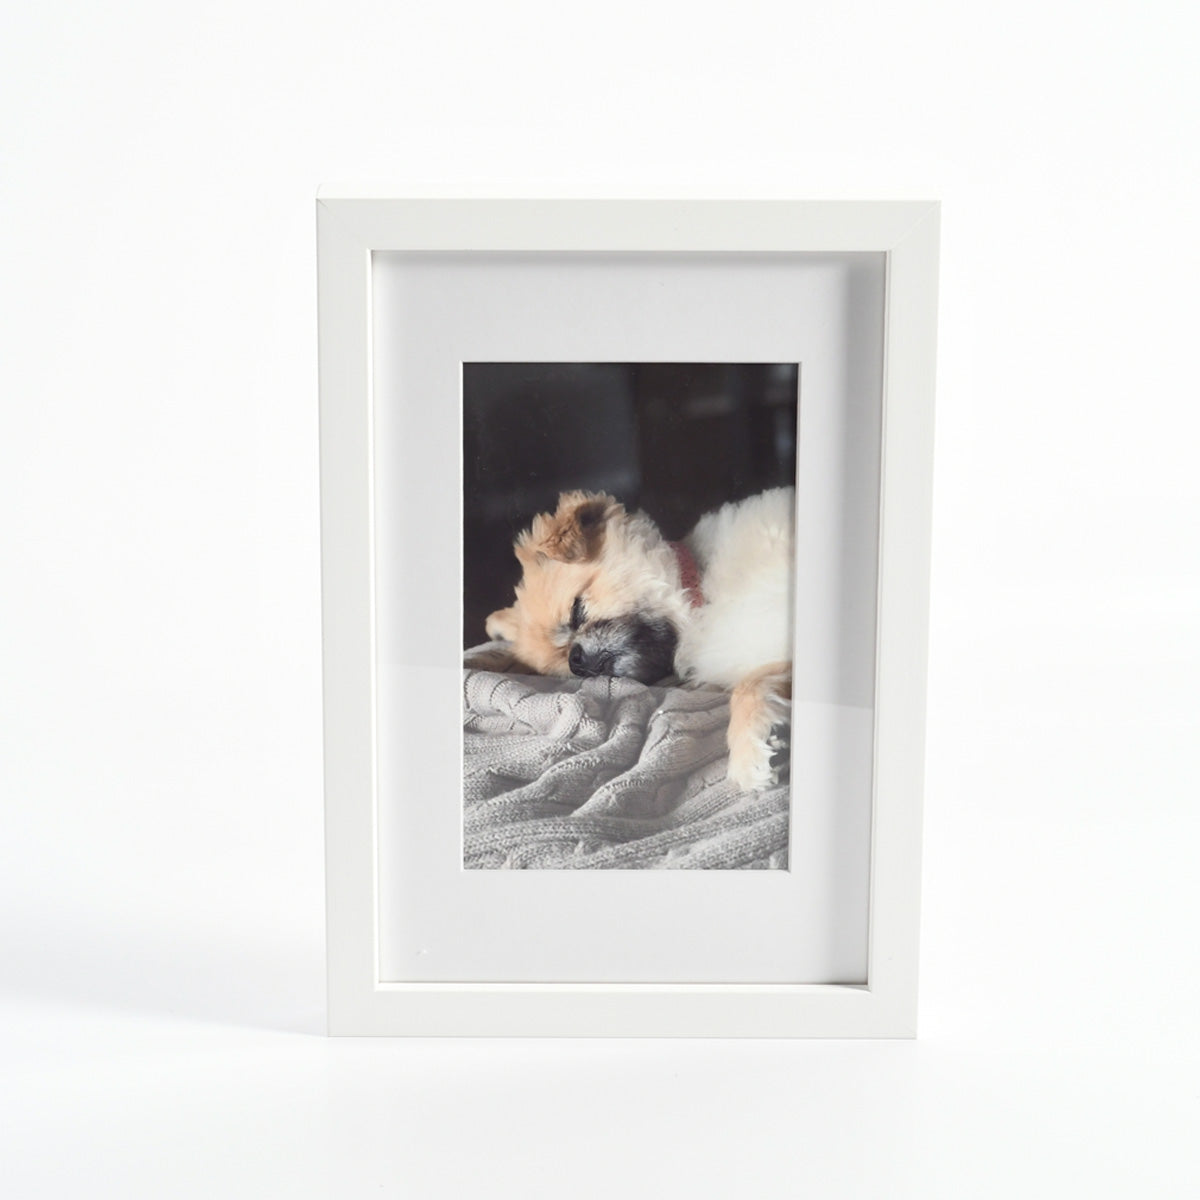 Photo of a Sleeping Dog in a Custom Framed Print